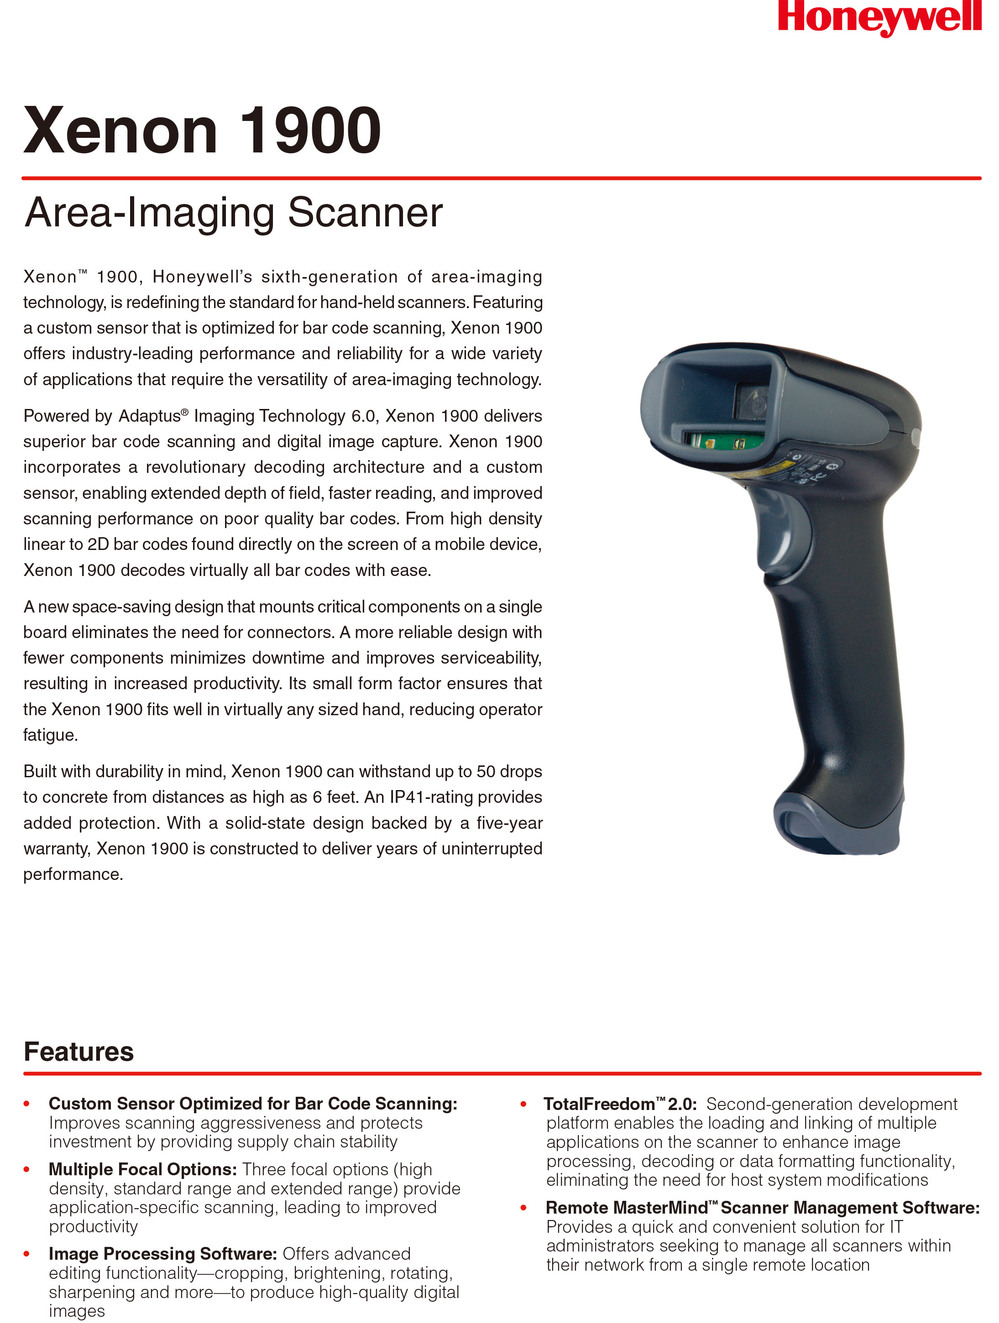 Honeywell Xenon 1900 Area-Imaging Scanner/2D Barcode scanner